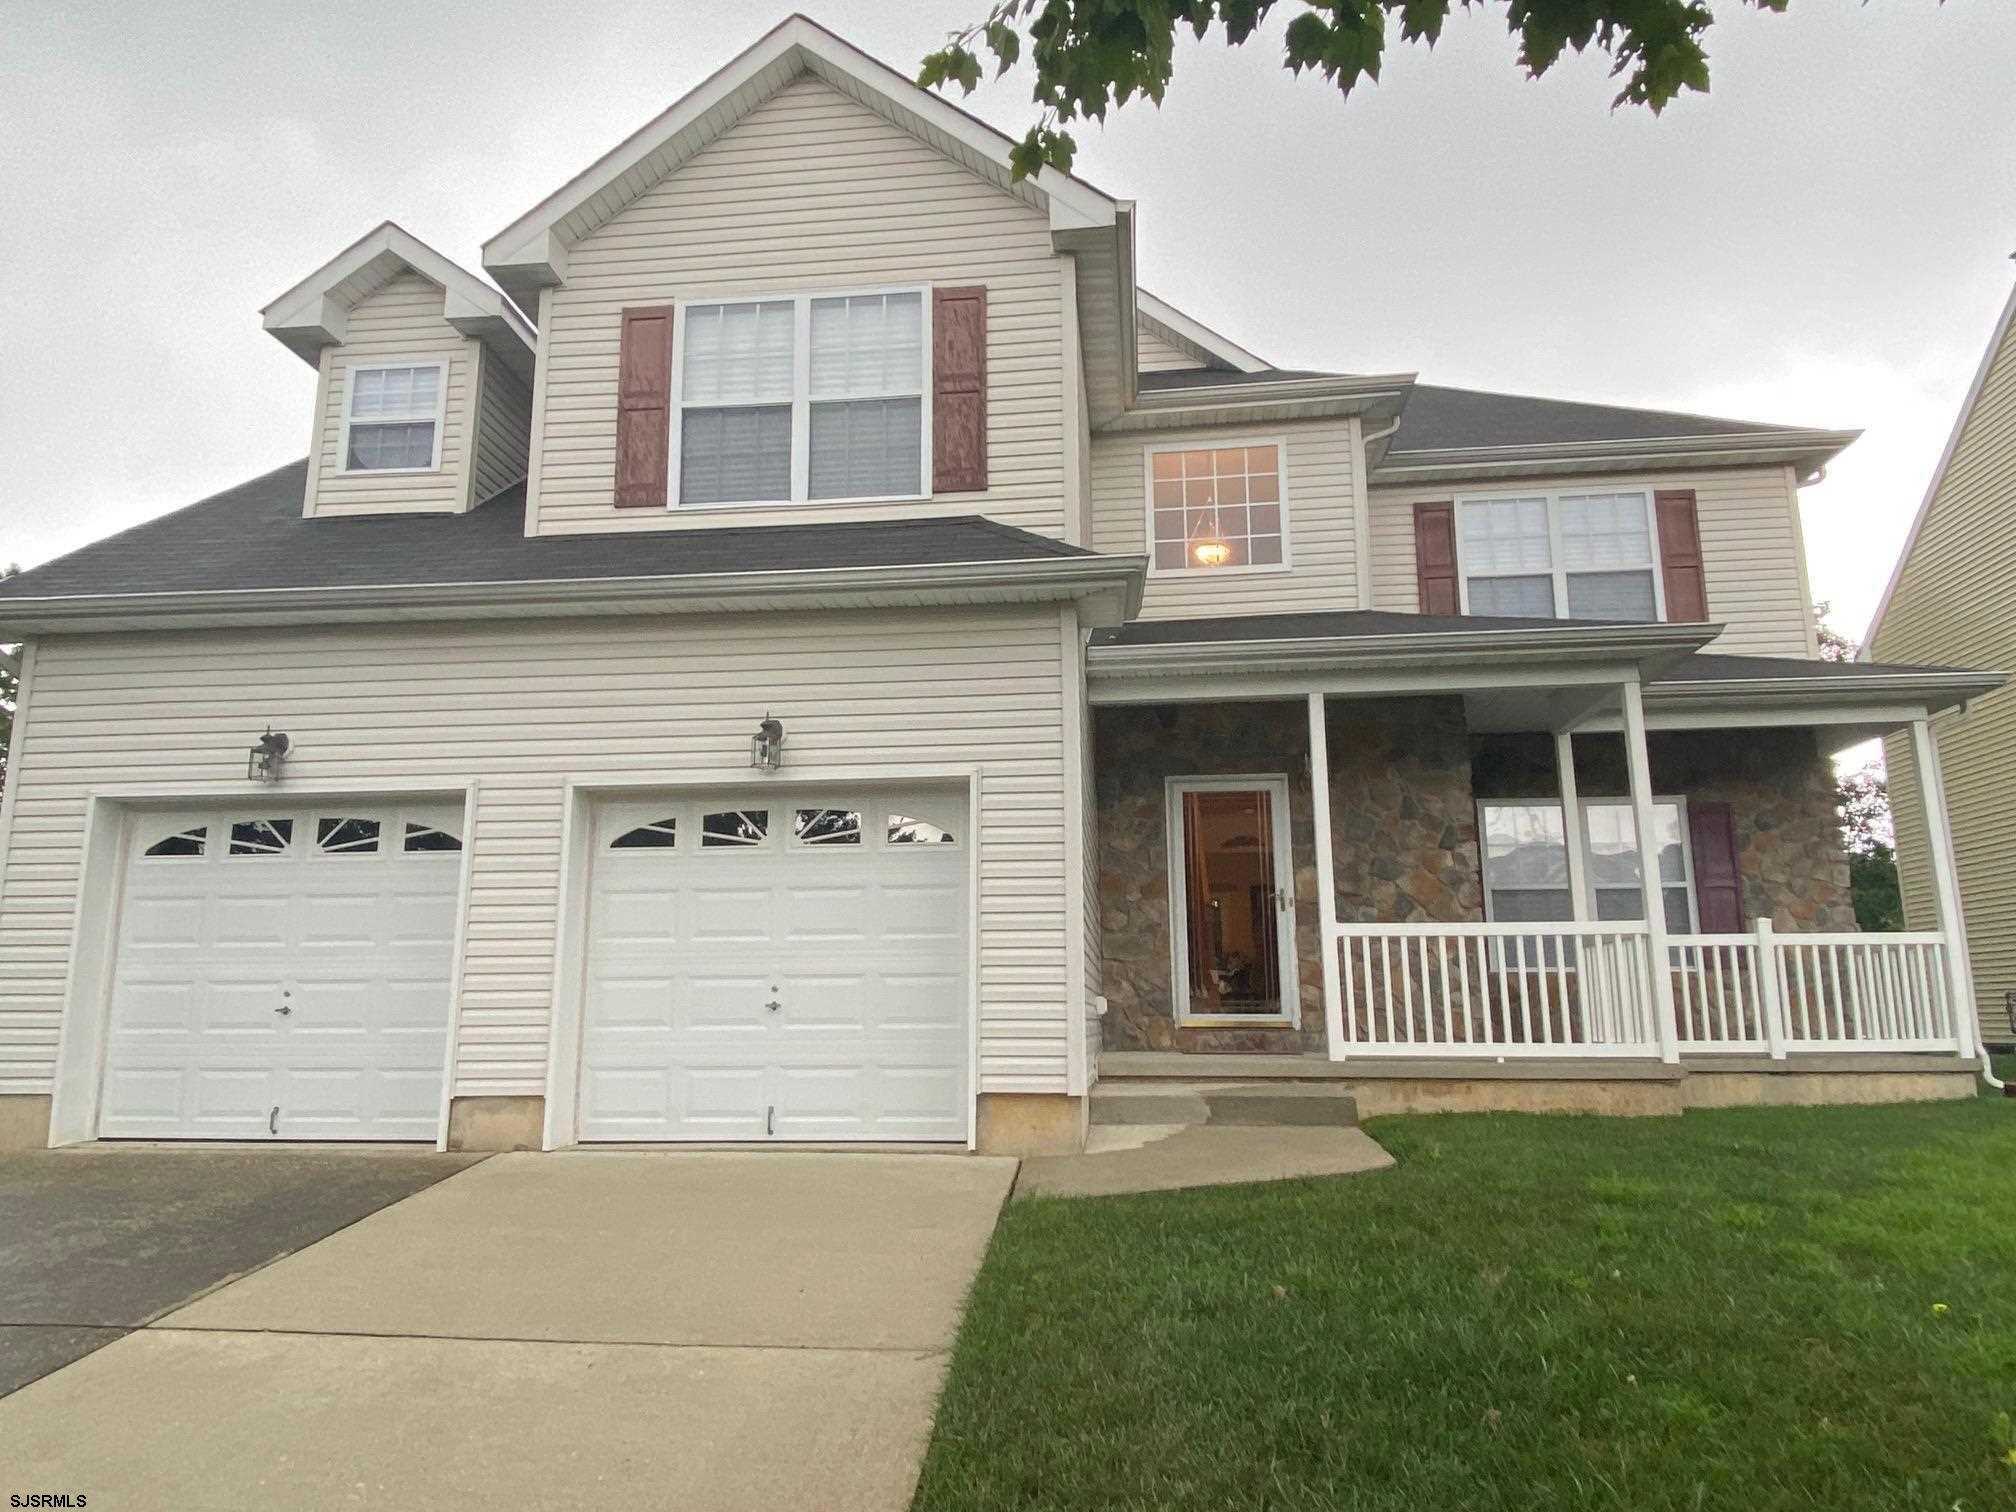 Welcome to this Spacious 5 bedroom 2.5 Bath, Center Hall Colonial facing East. Built in 2003, being